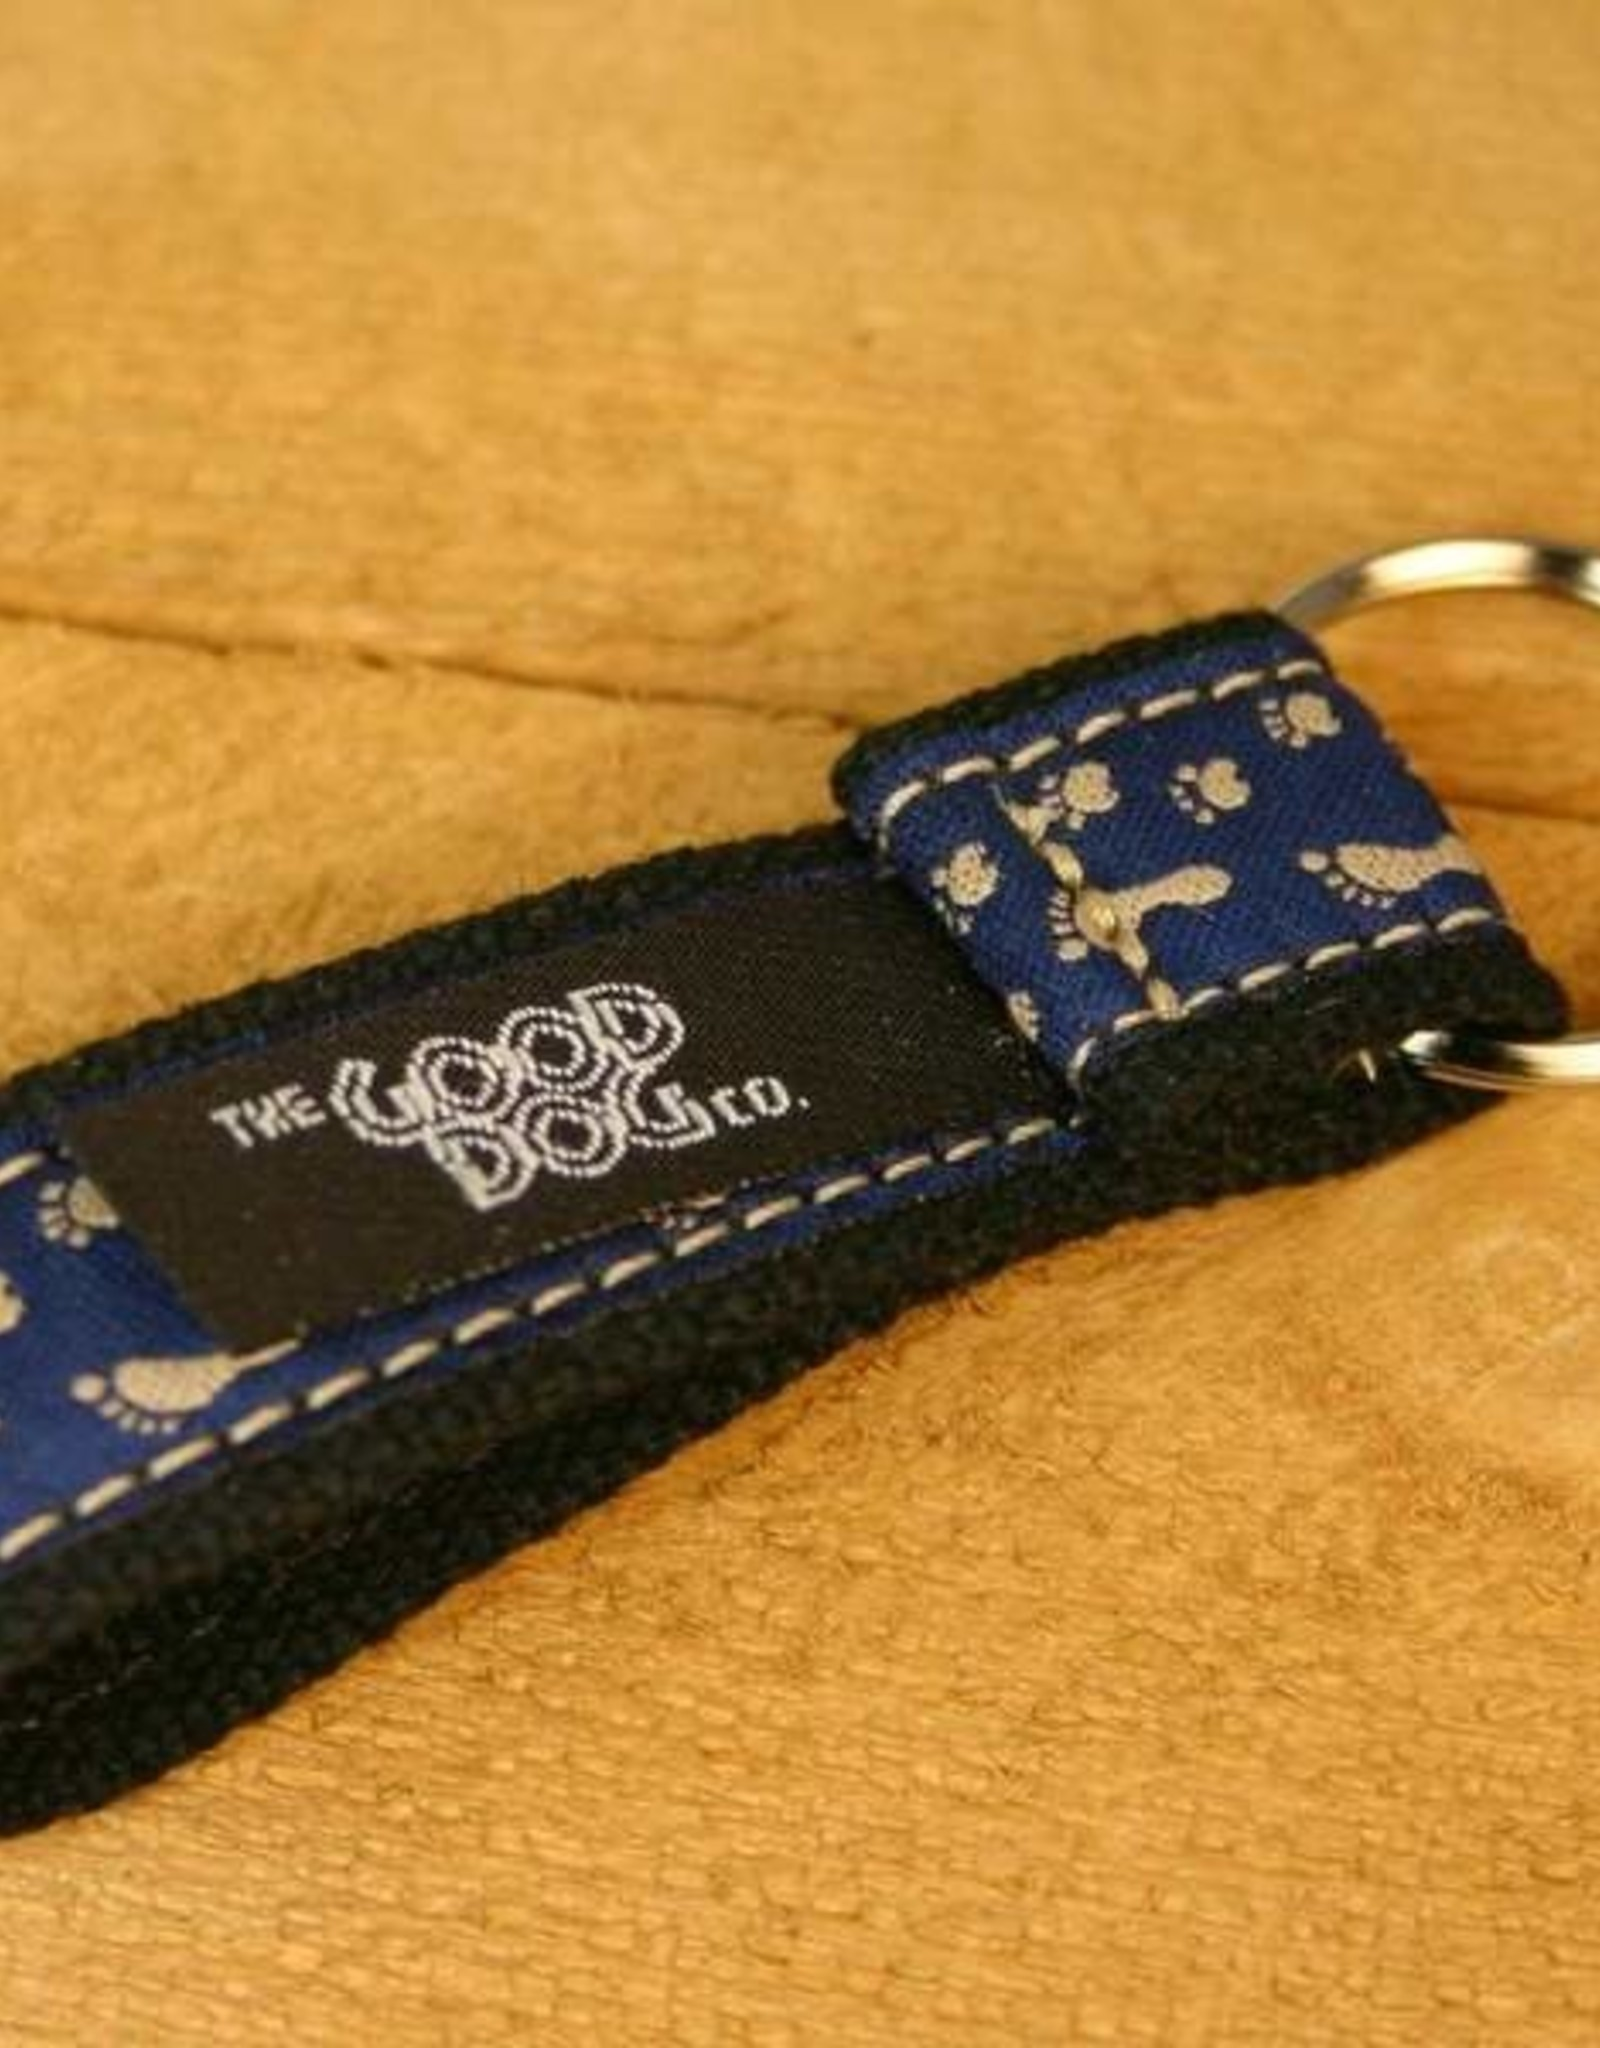 The Good Dog Company Best Friends Keychain Blue Paws